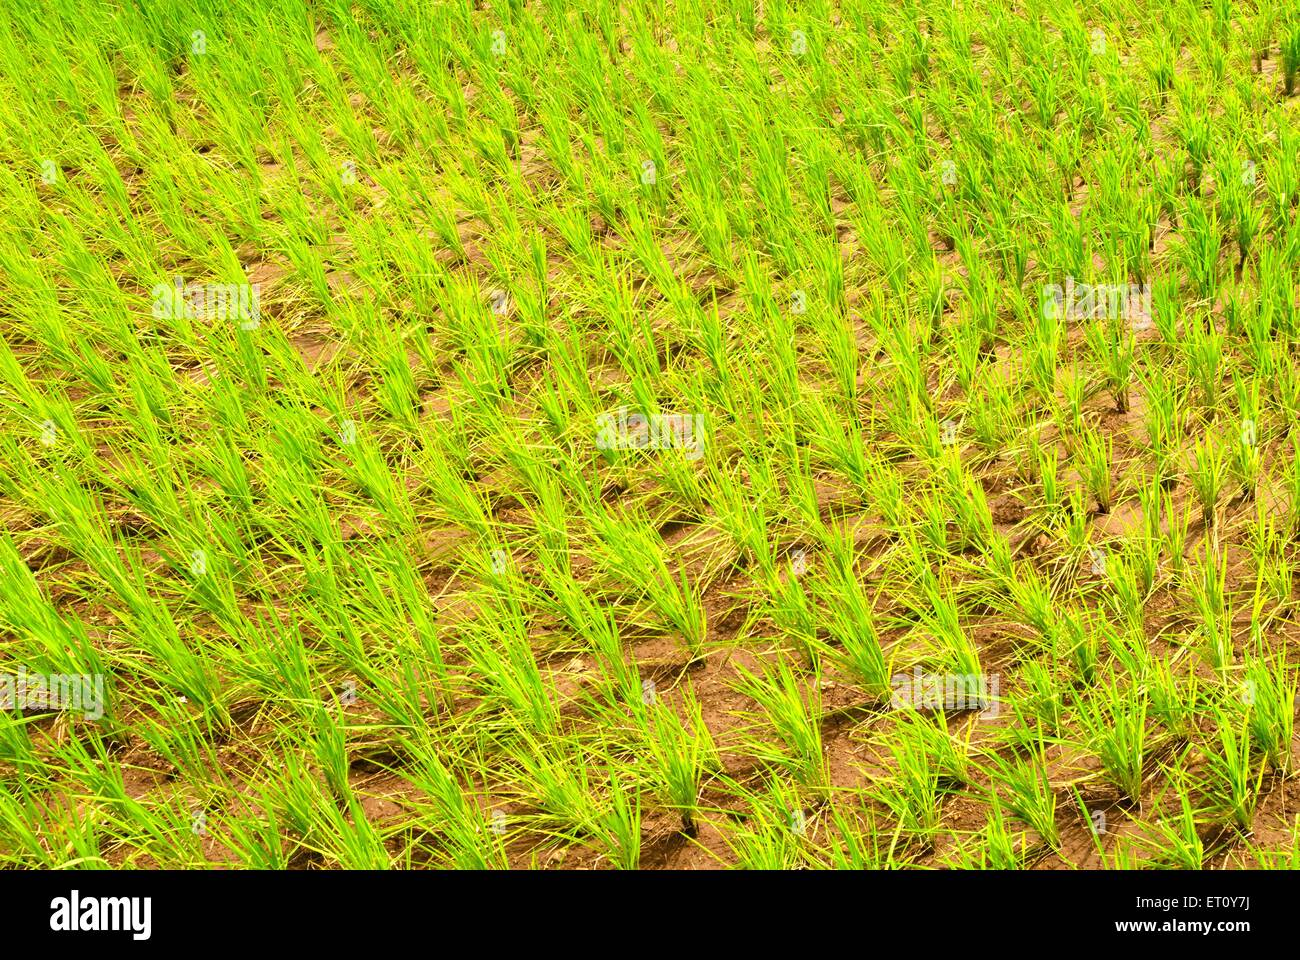 Lush green paddy field cultivation of rice crop at Malshej Ghat ; Maharashtra ; India - Stock Image